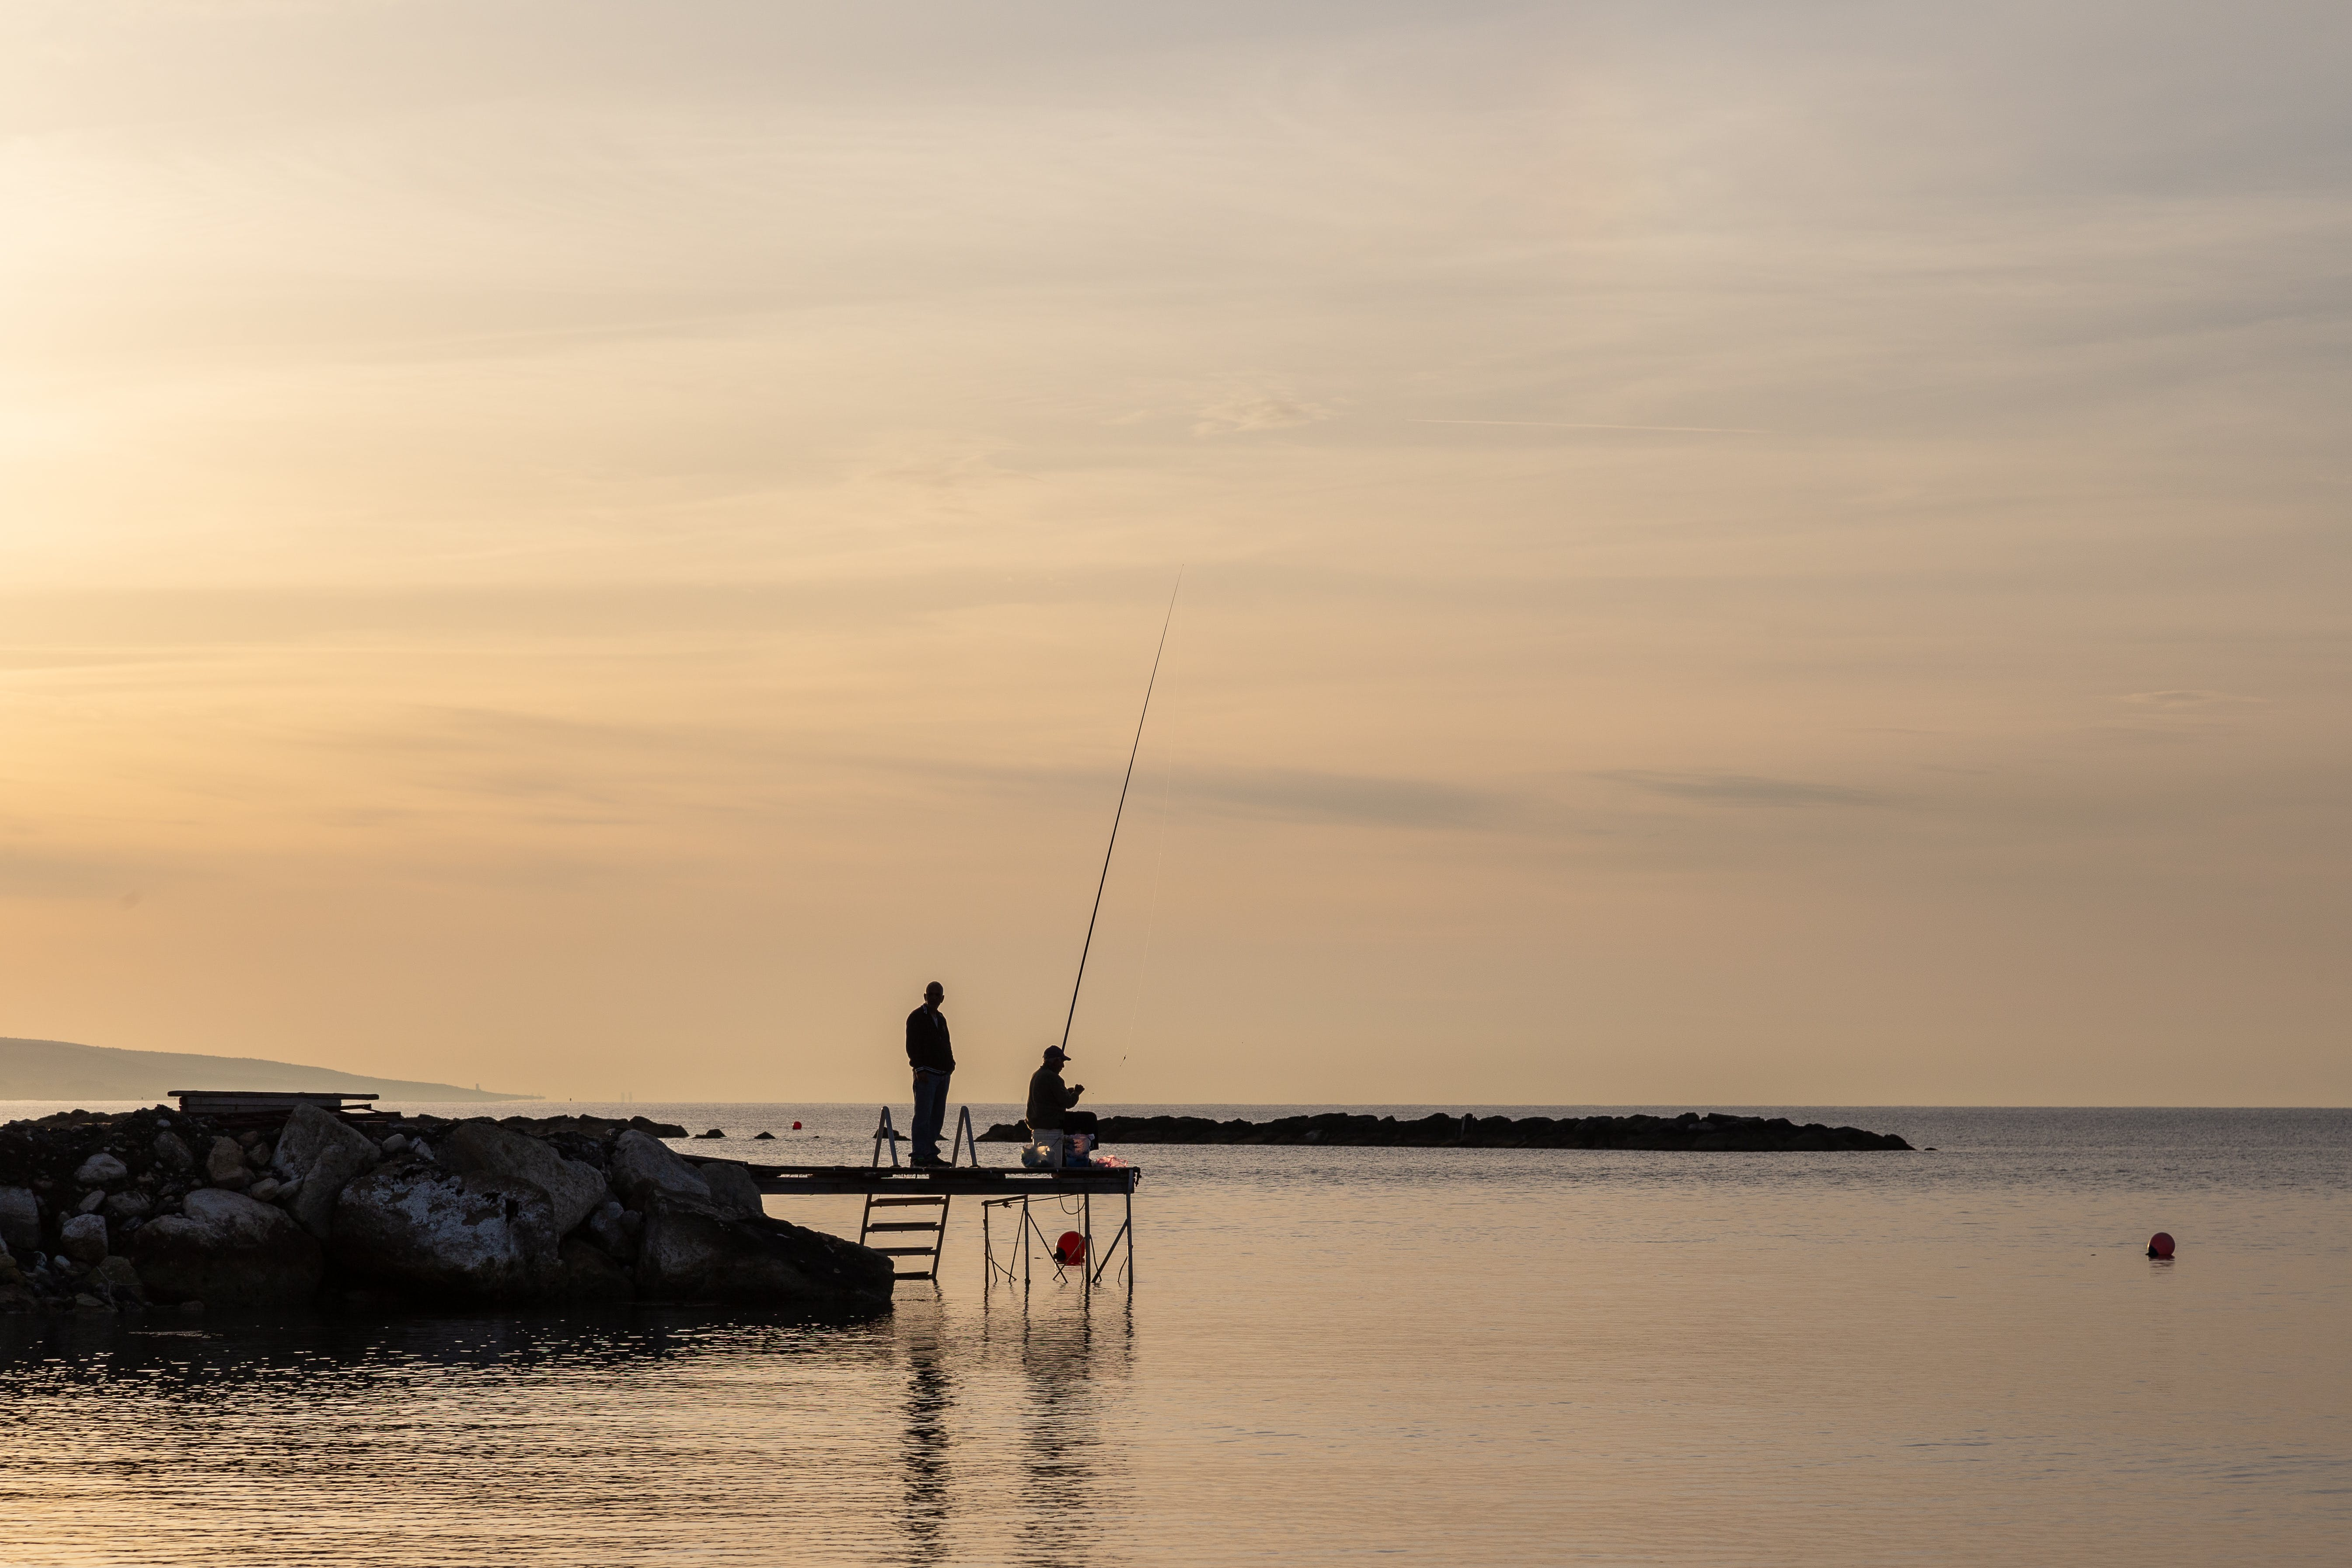 Two Person Having Fishing on Dock